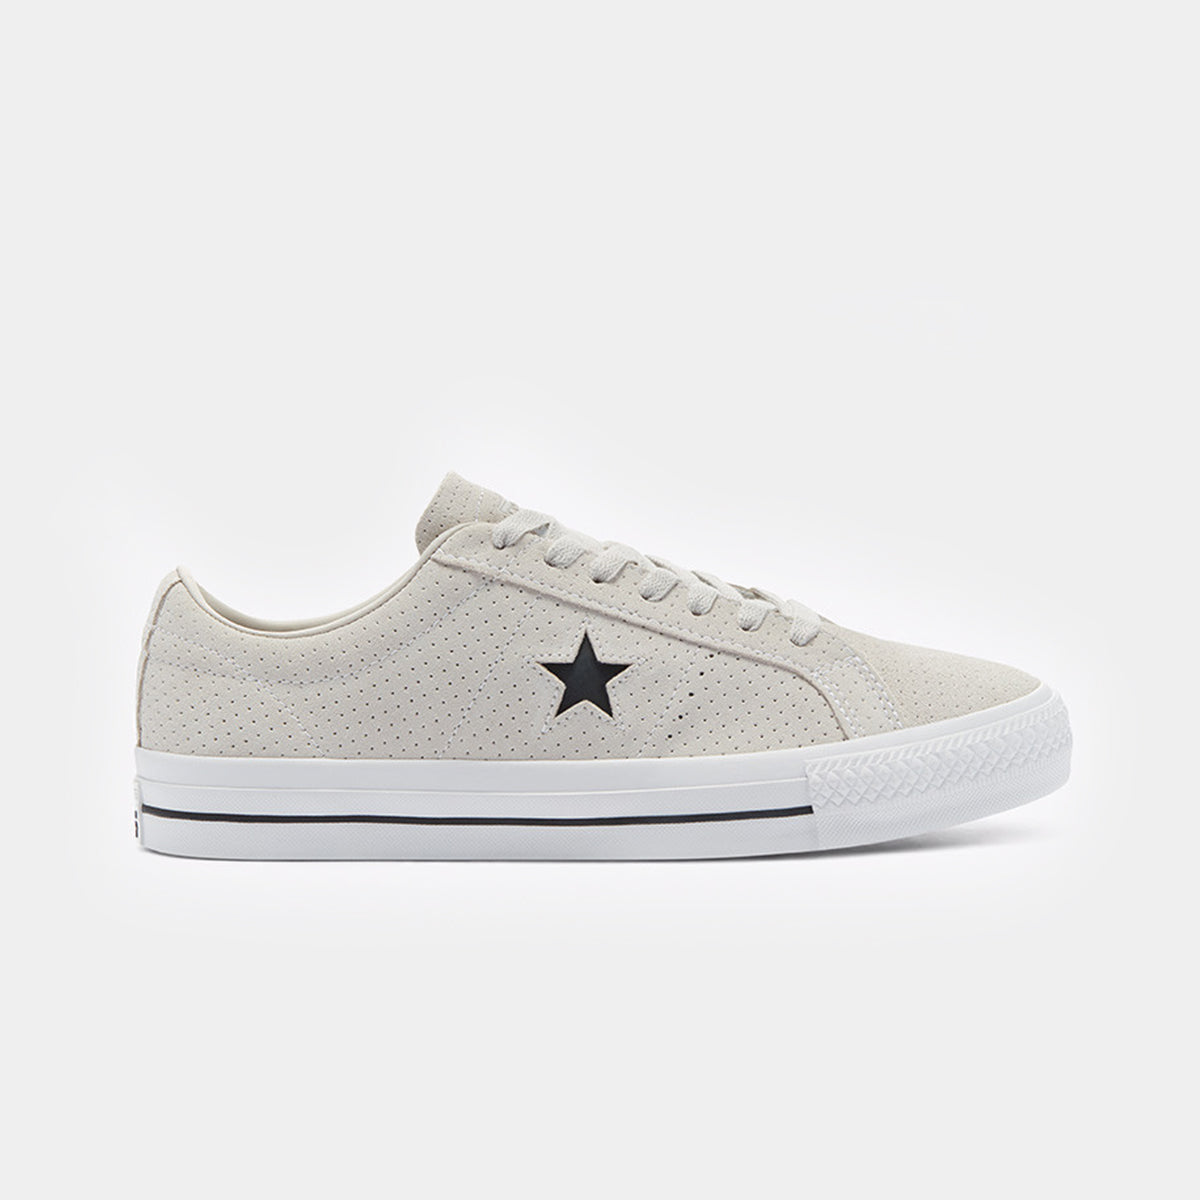 CONVERSE ONE STAR PRO OX - PALE PUTTY/WHITE